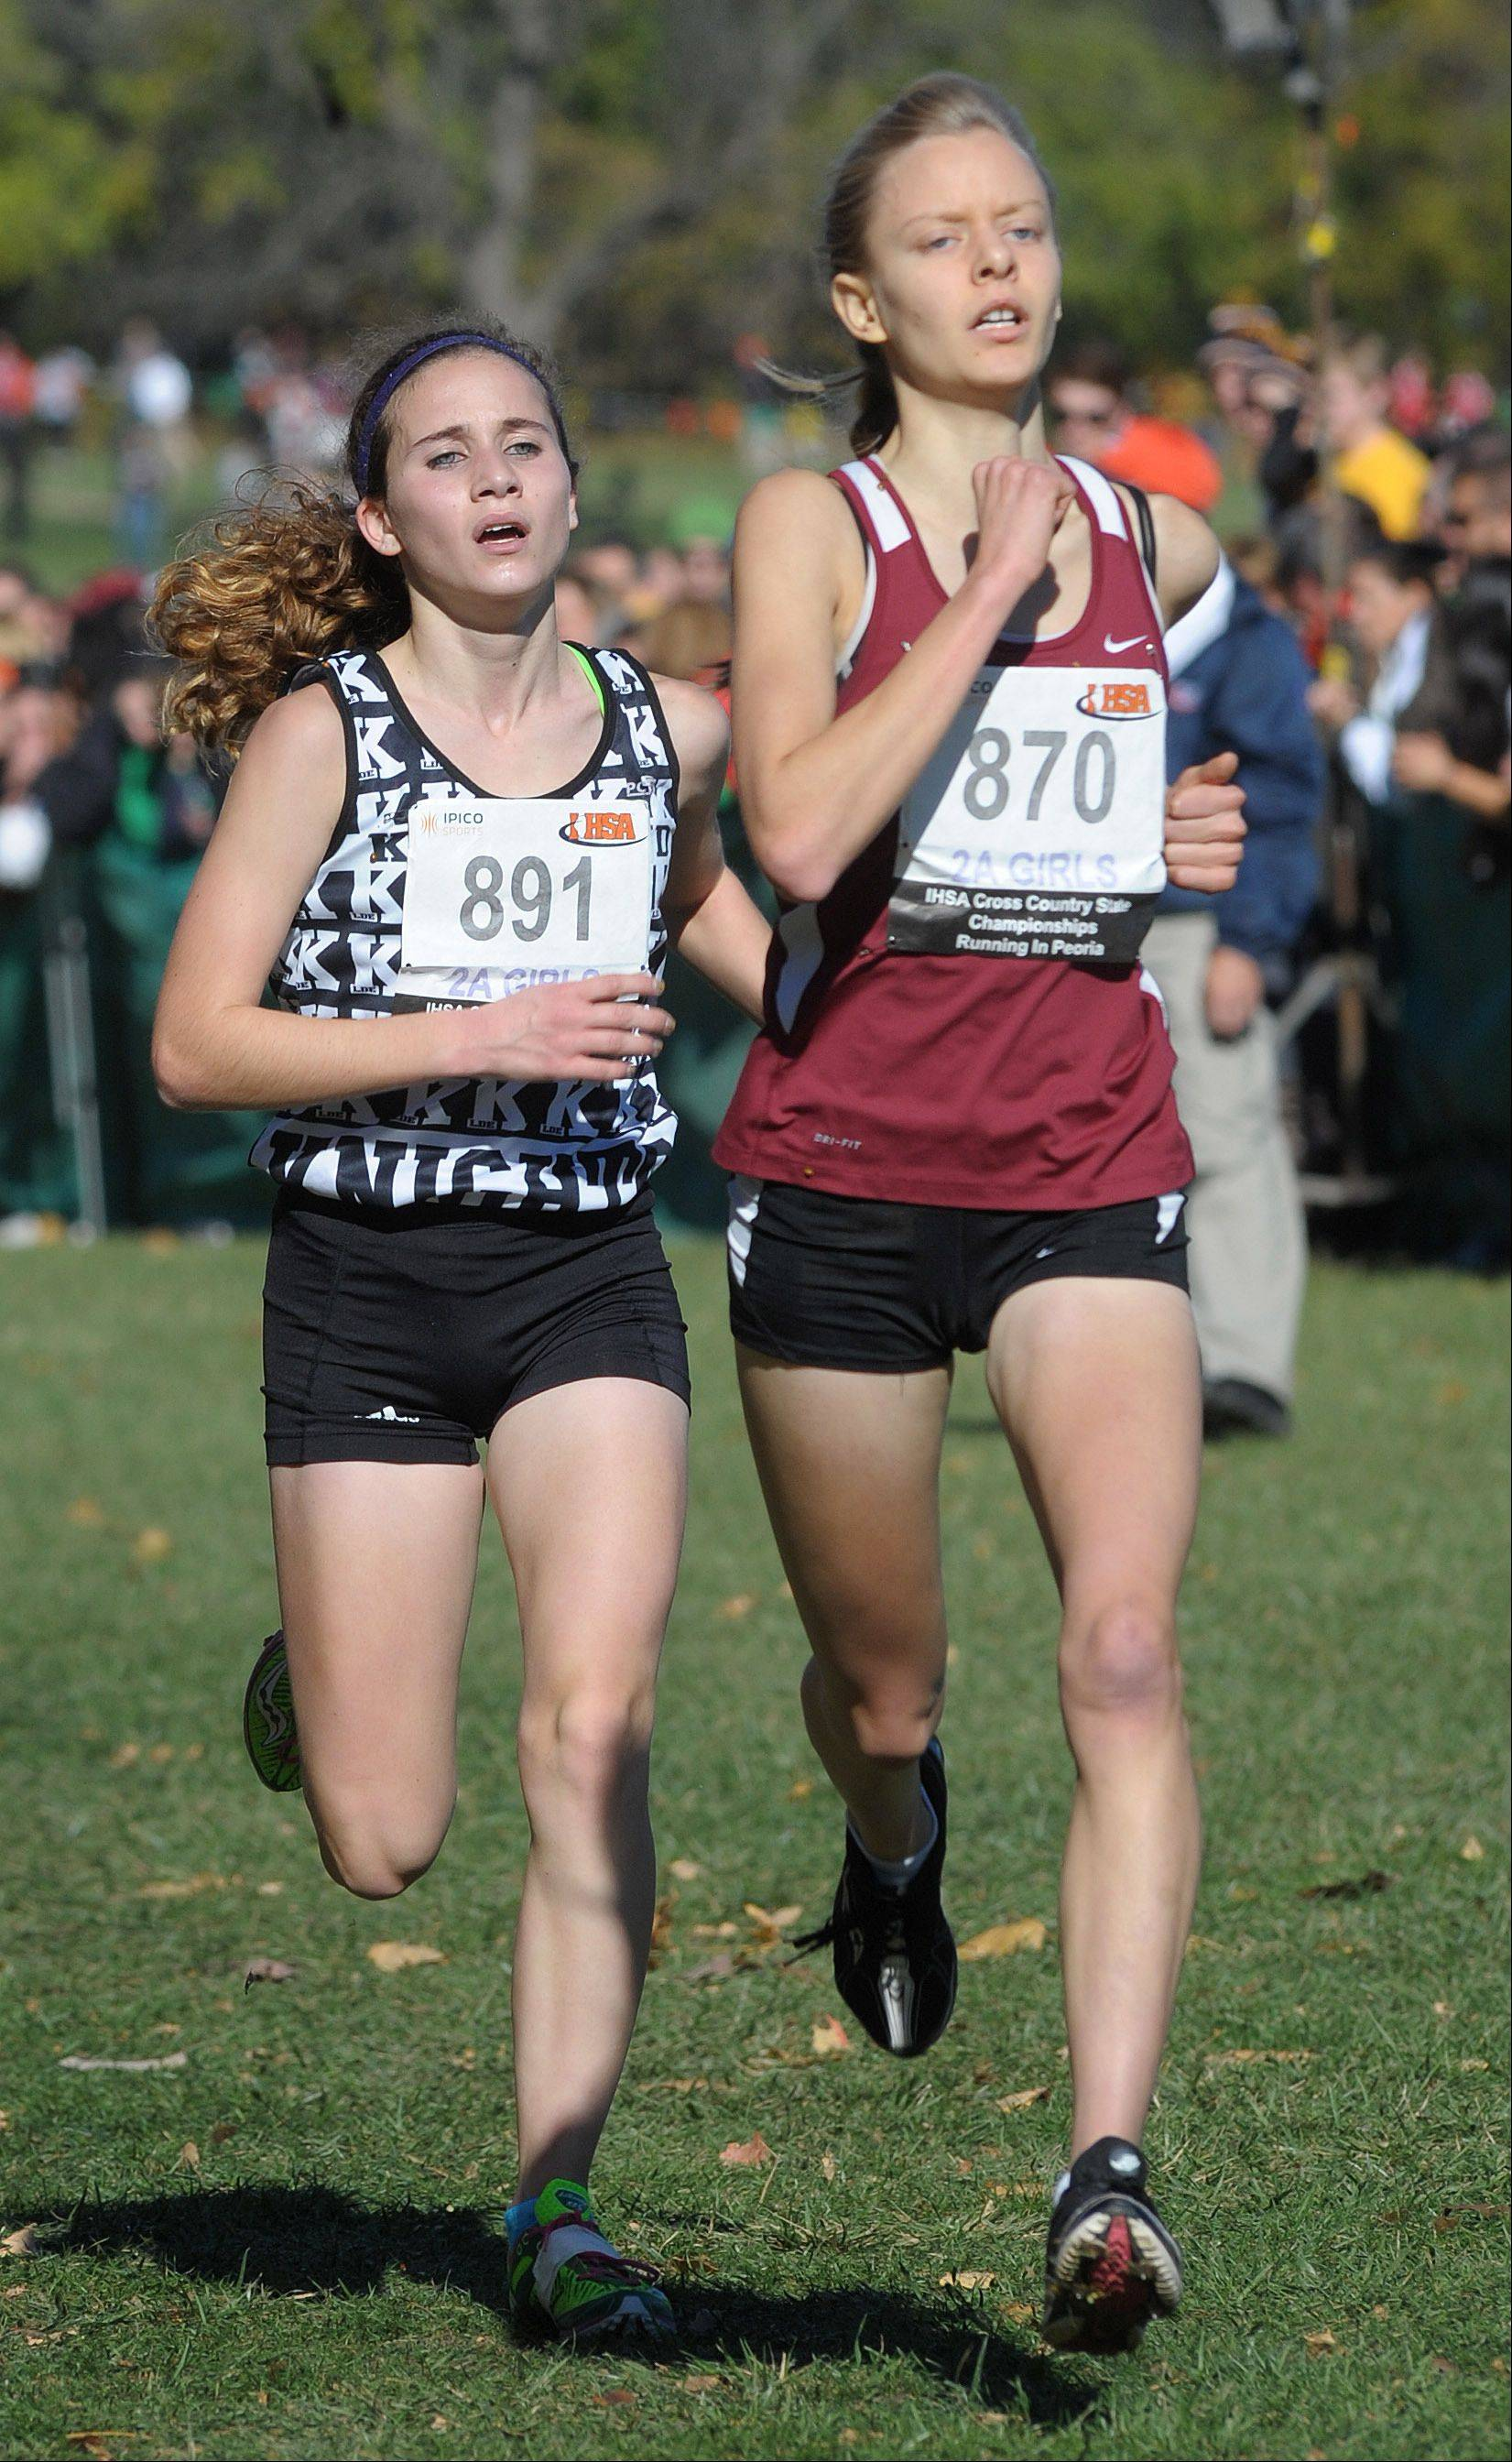 Kaneland's Brianna Bower (891) and Montini's Maggie Hallerud (870) battle to the finish line in the Class 2A IHSA cross country state final at Detweiller Park in Peoria on Saturday, November 9.